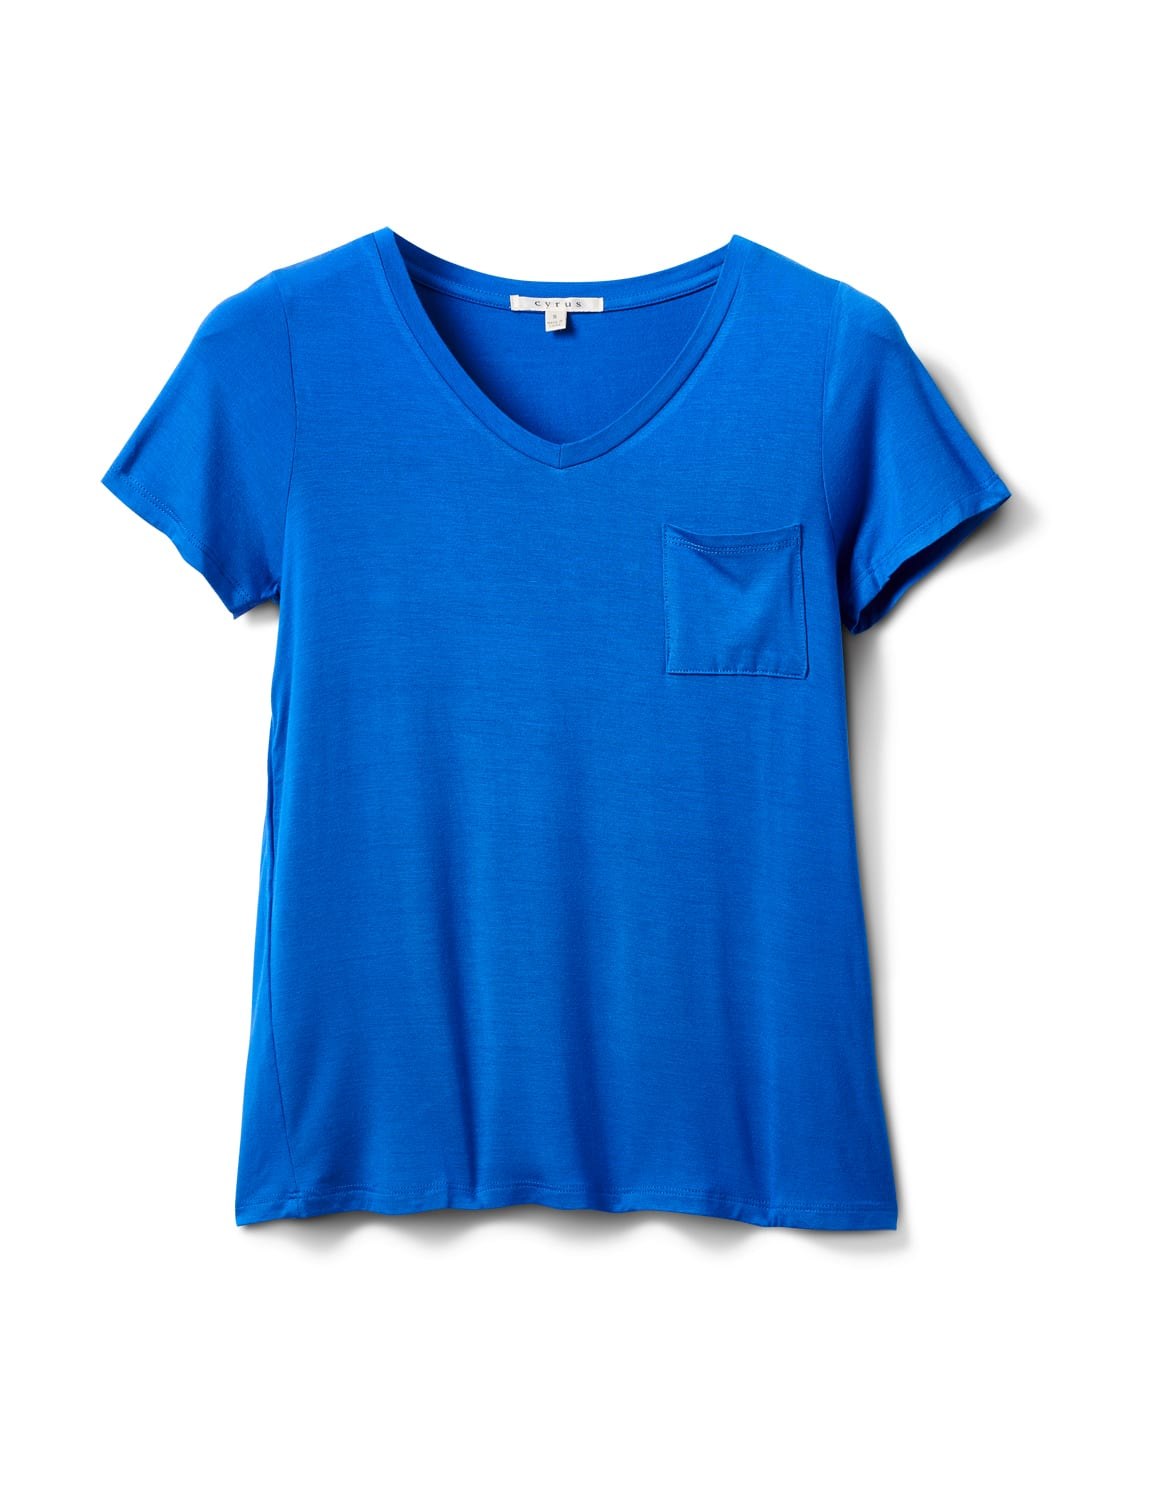 Rayon Span V-Neck Tee - Royal Blue - Front